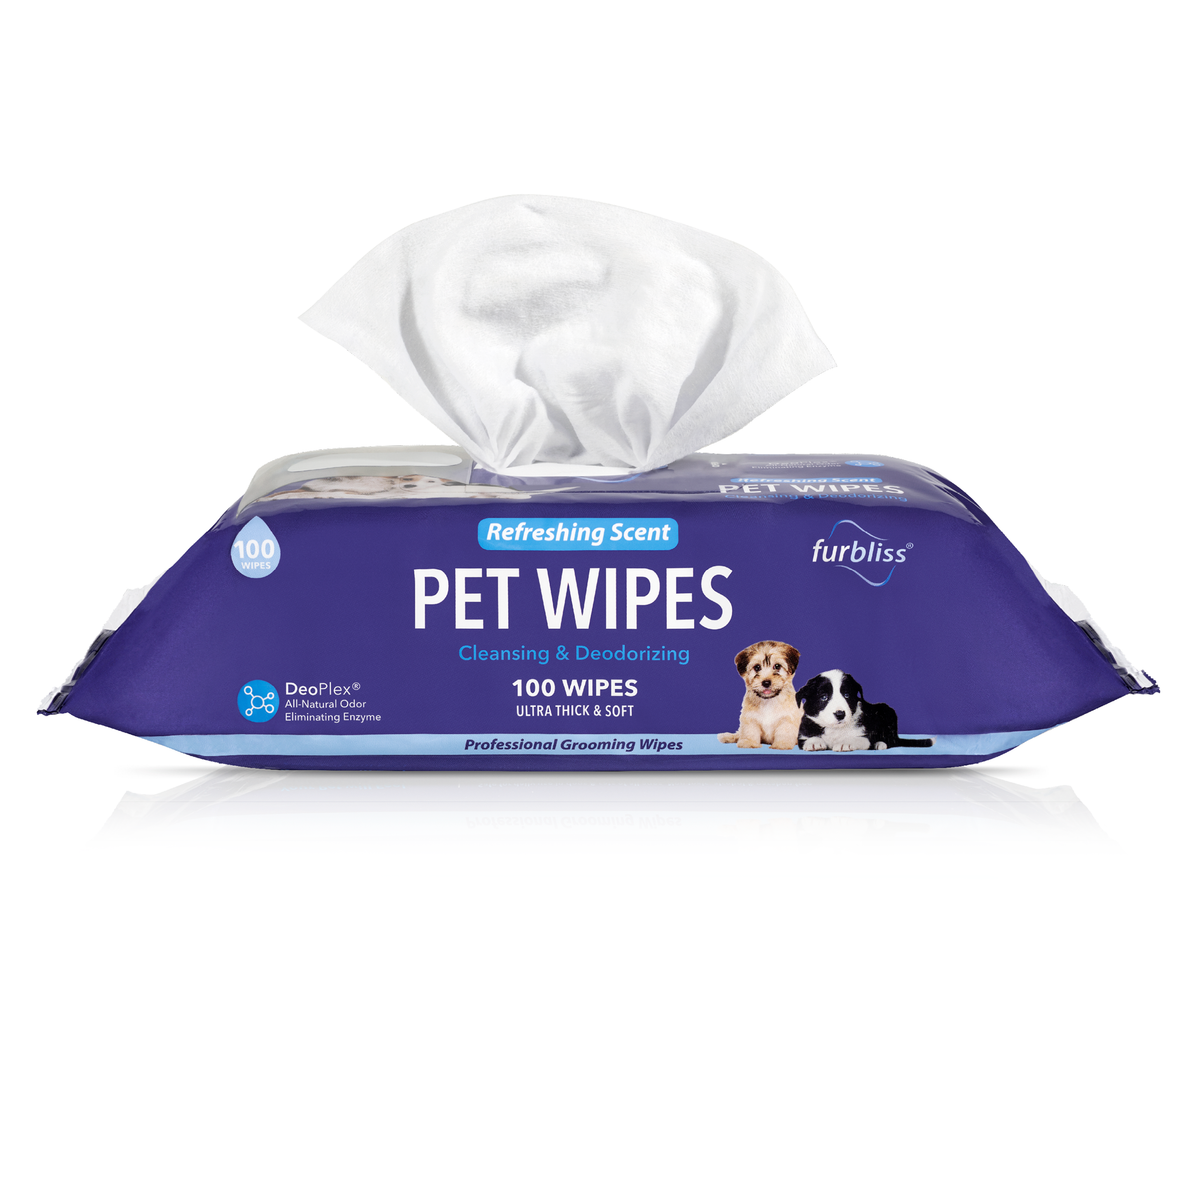 Furbliss Refreshing Hygienic Grooming Wipes for Dogs and Cats - 100 ct